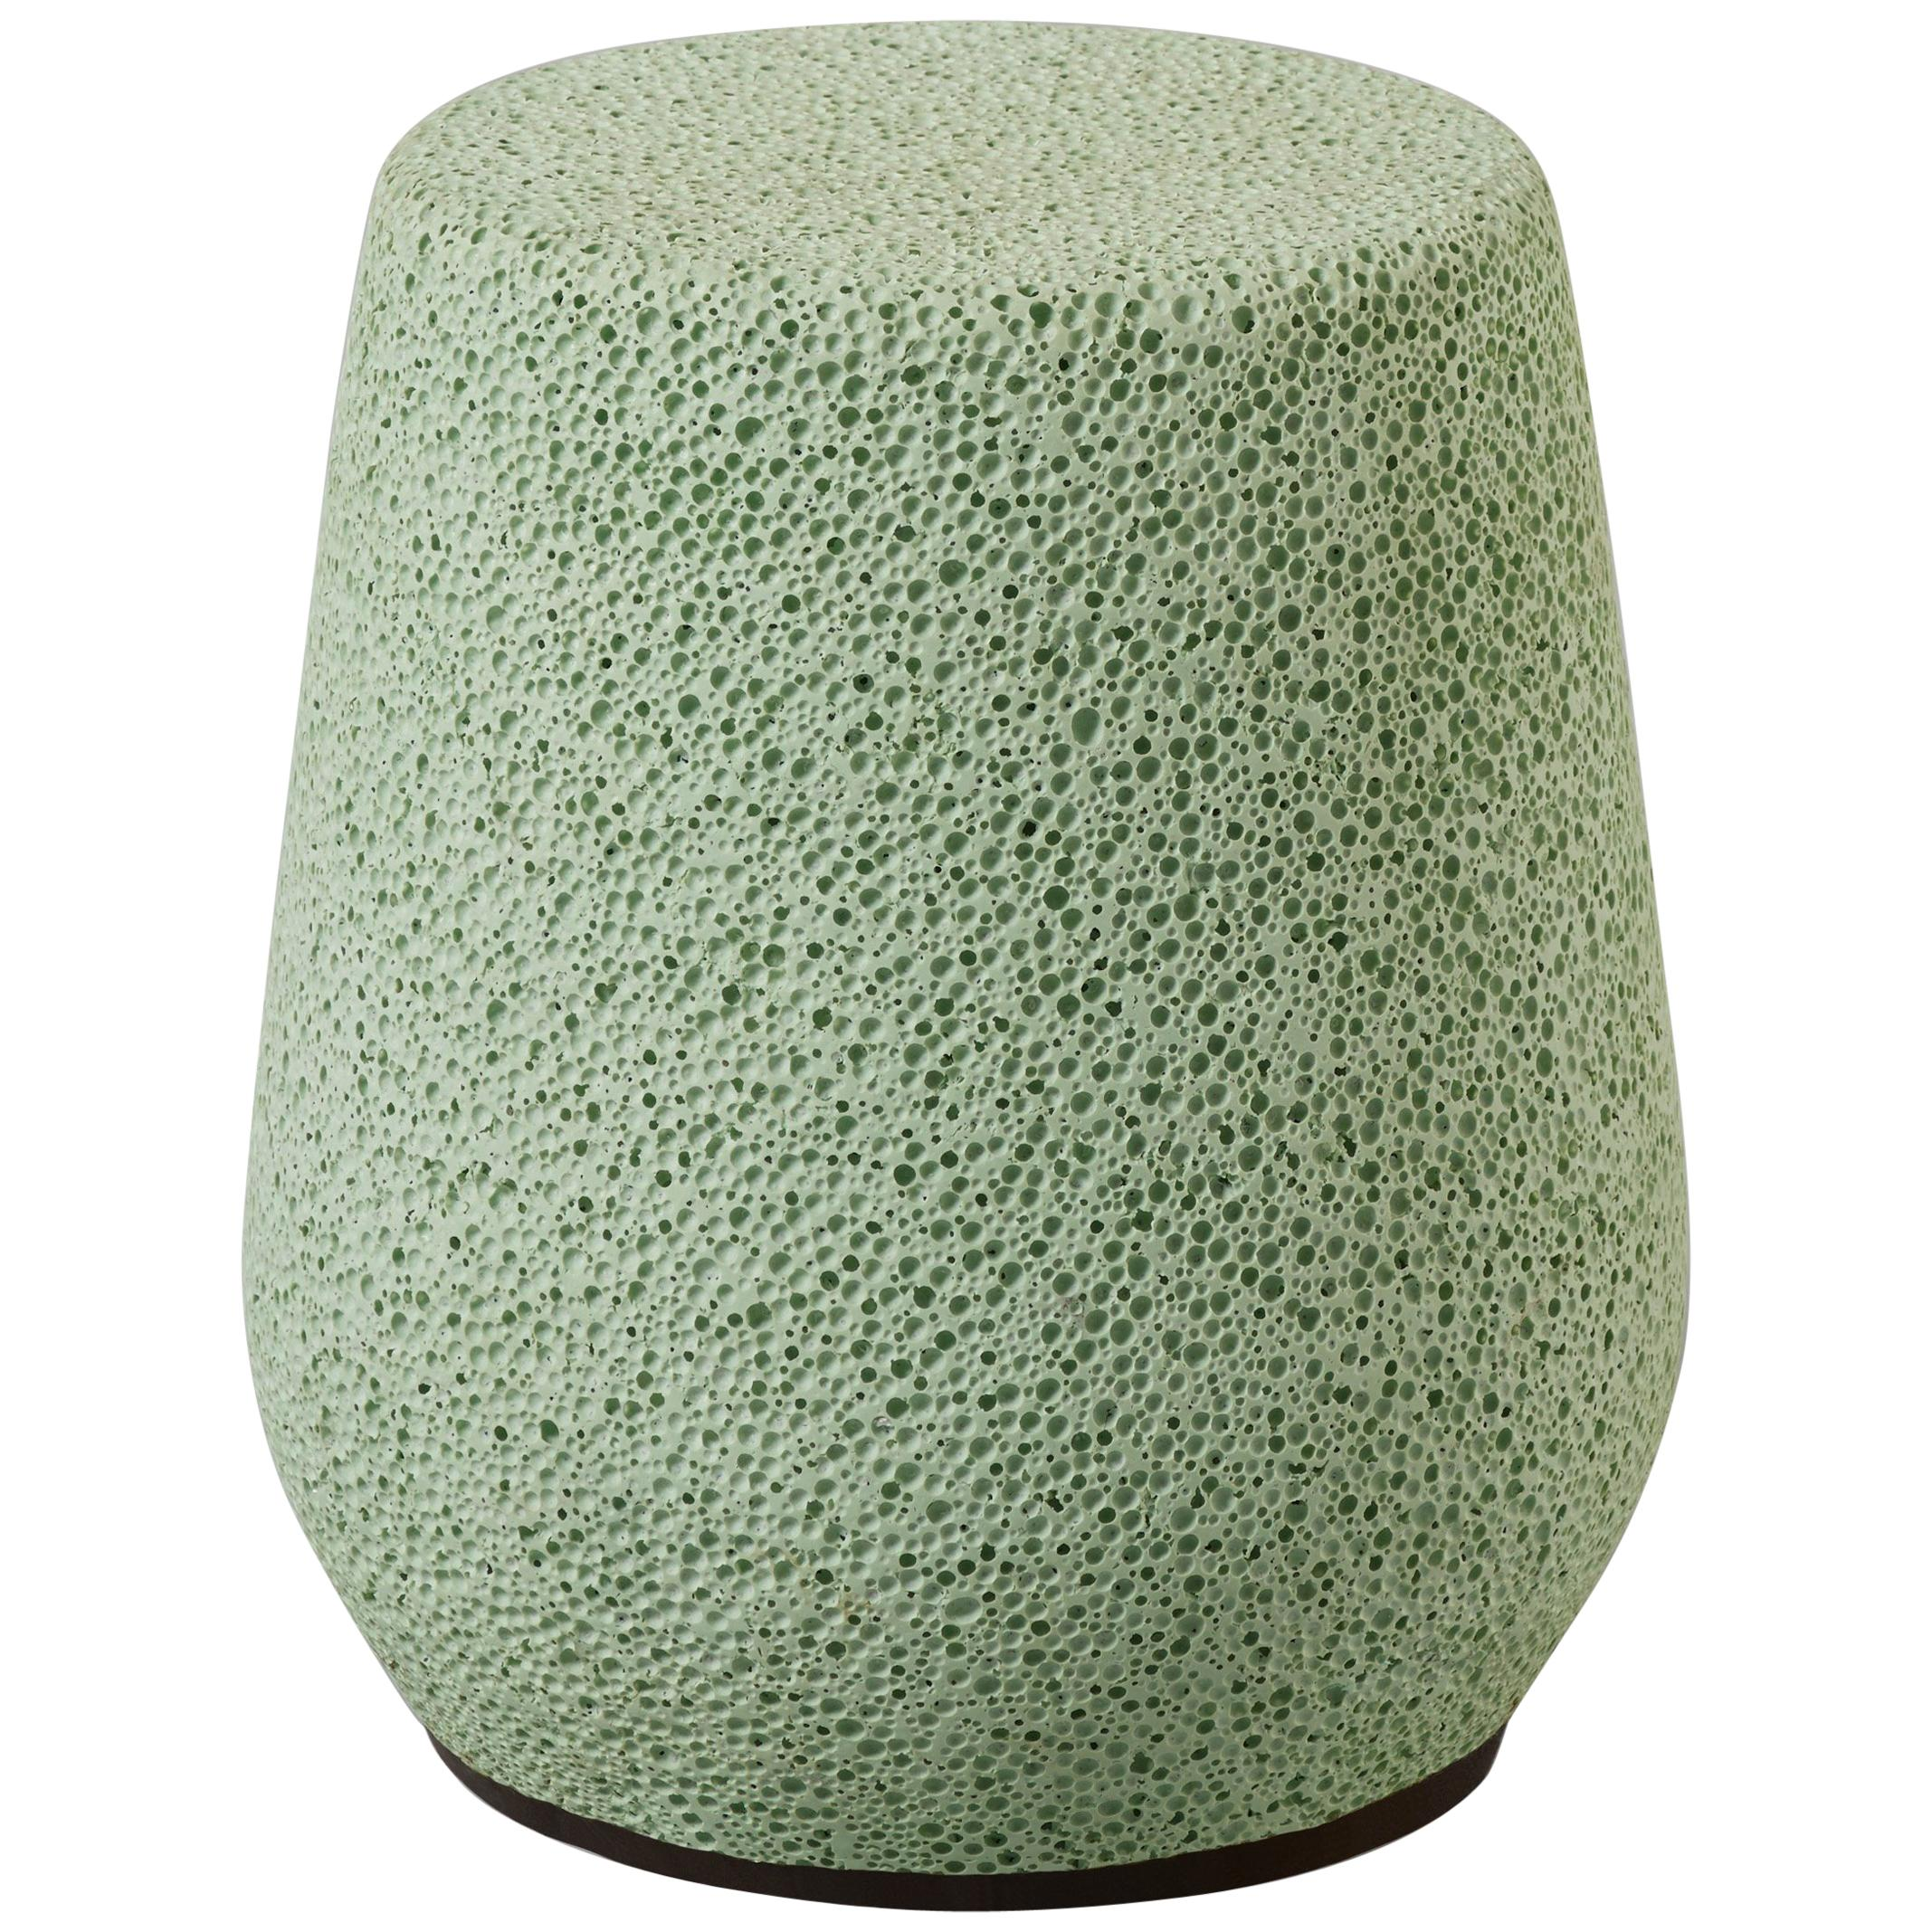 'Lightweight Porcelain' Children's Stool and Side Table by Djim Berger - Green